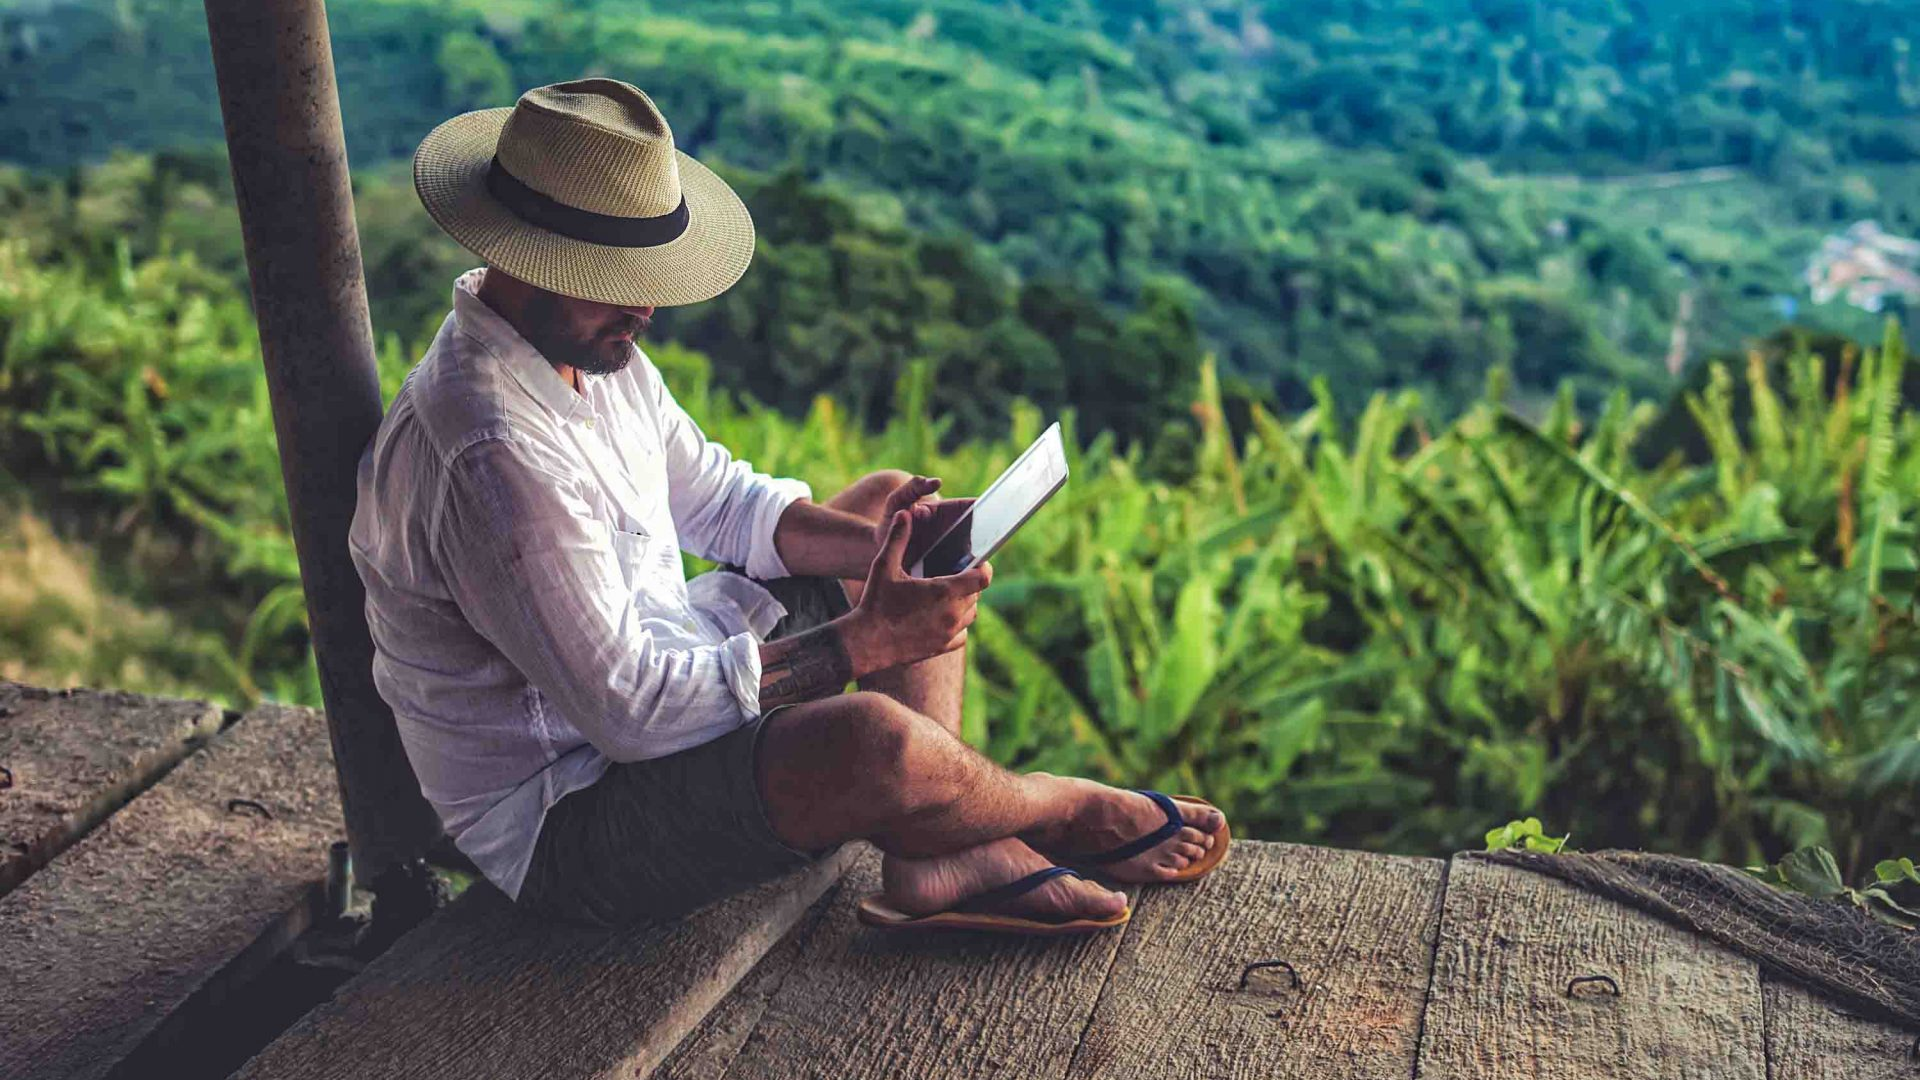 Getting away from it all: Is 'digital detox' travel a gimmick or a godsend?